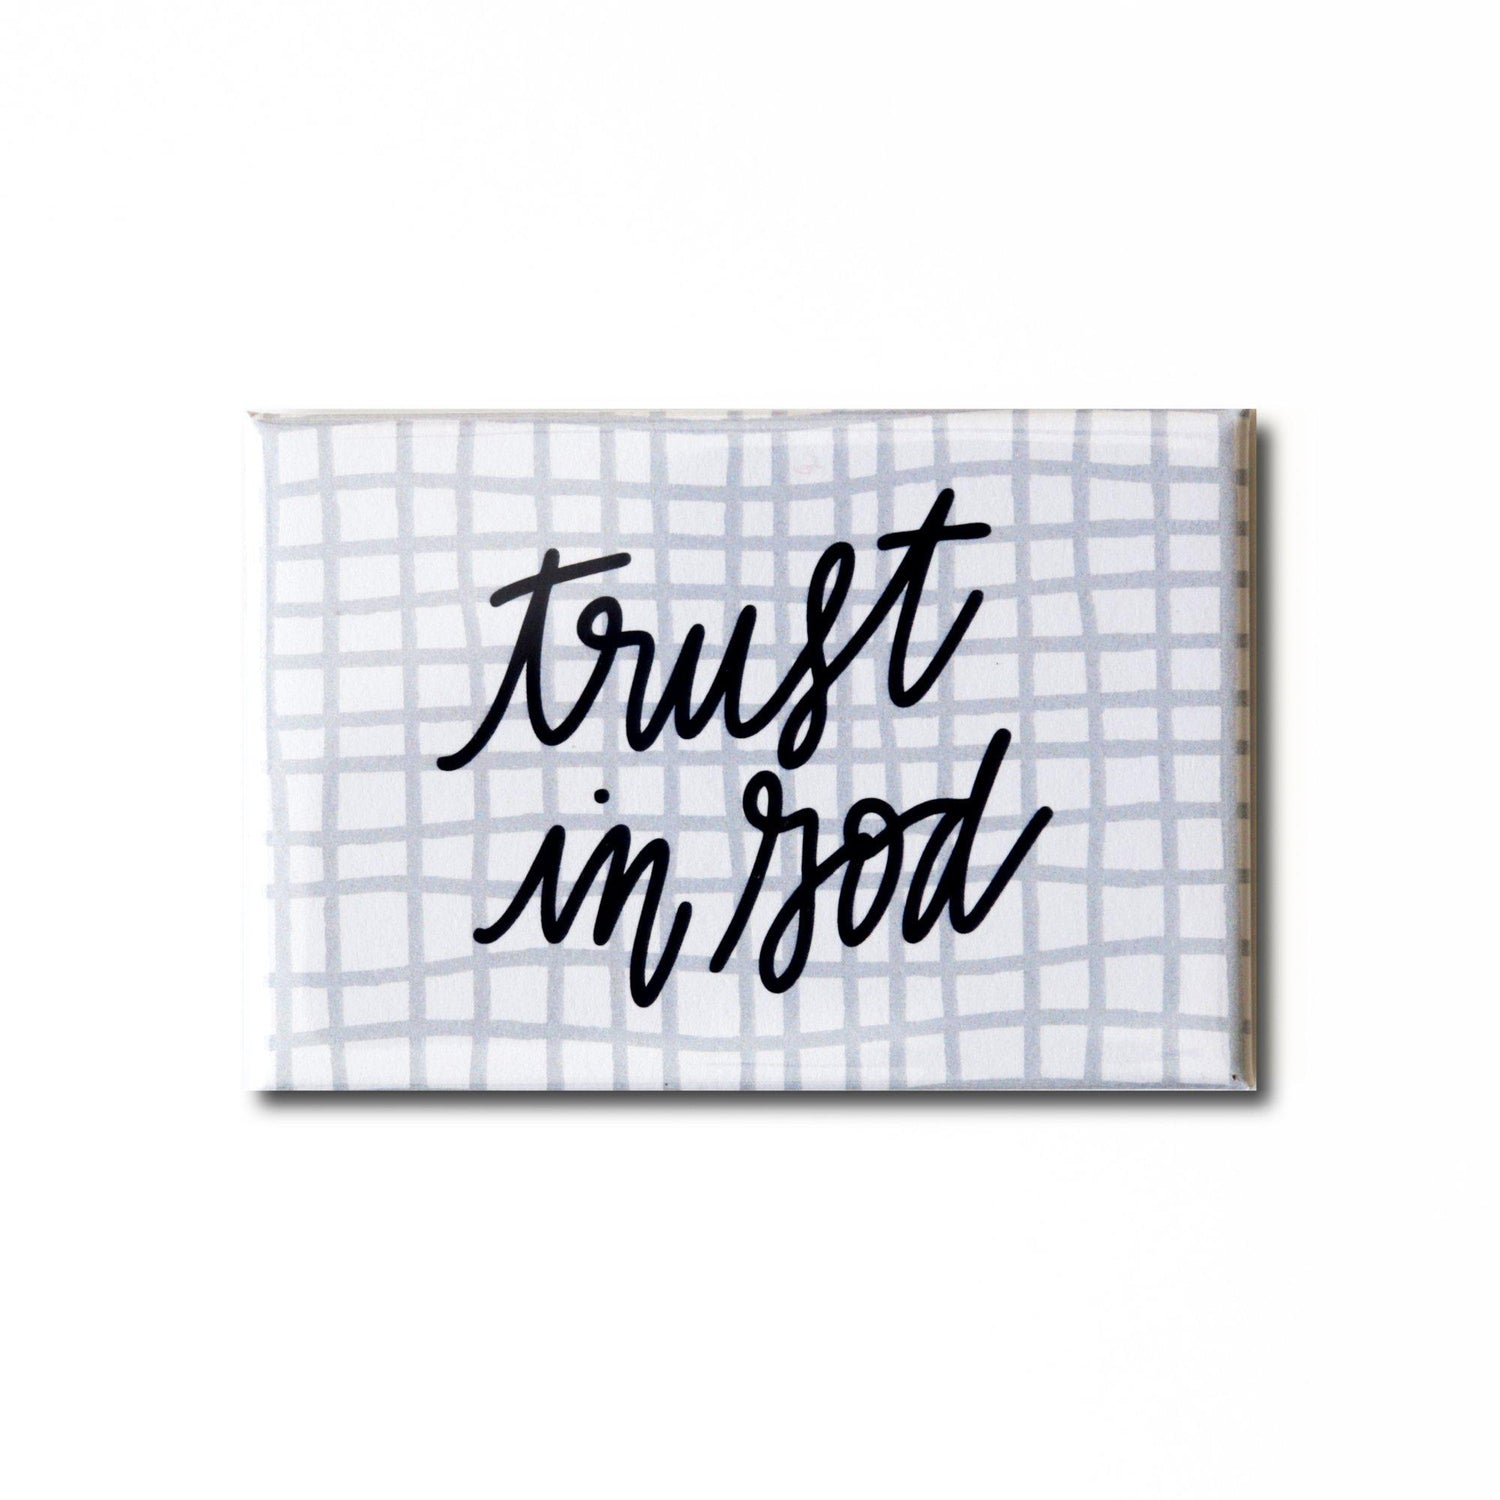 Trust in God Magnet from Muscadine Press.